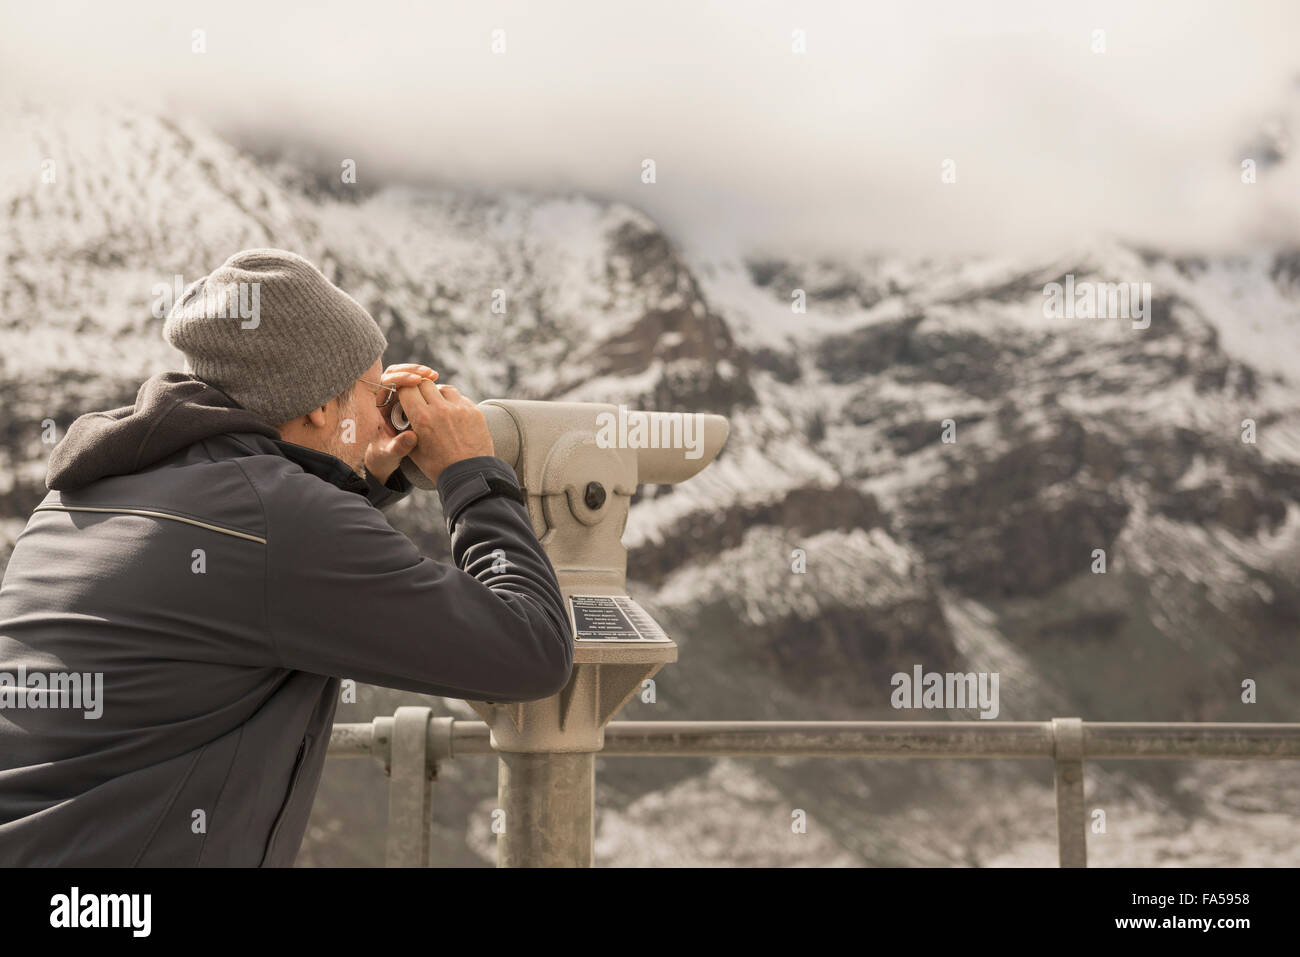 Mature man looking at mountain with telescope, Grossglockner mountain, National Park Hohe Tauern, Carinthia, Austria - Stock Image